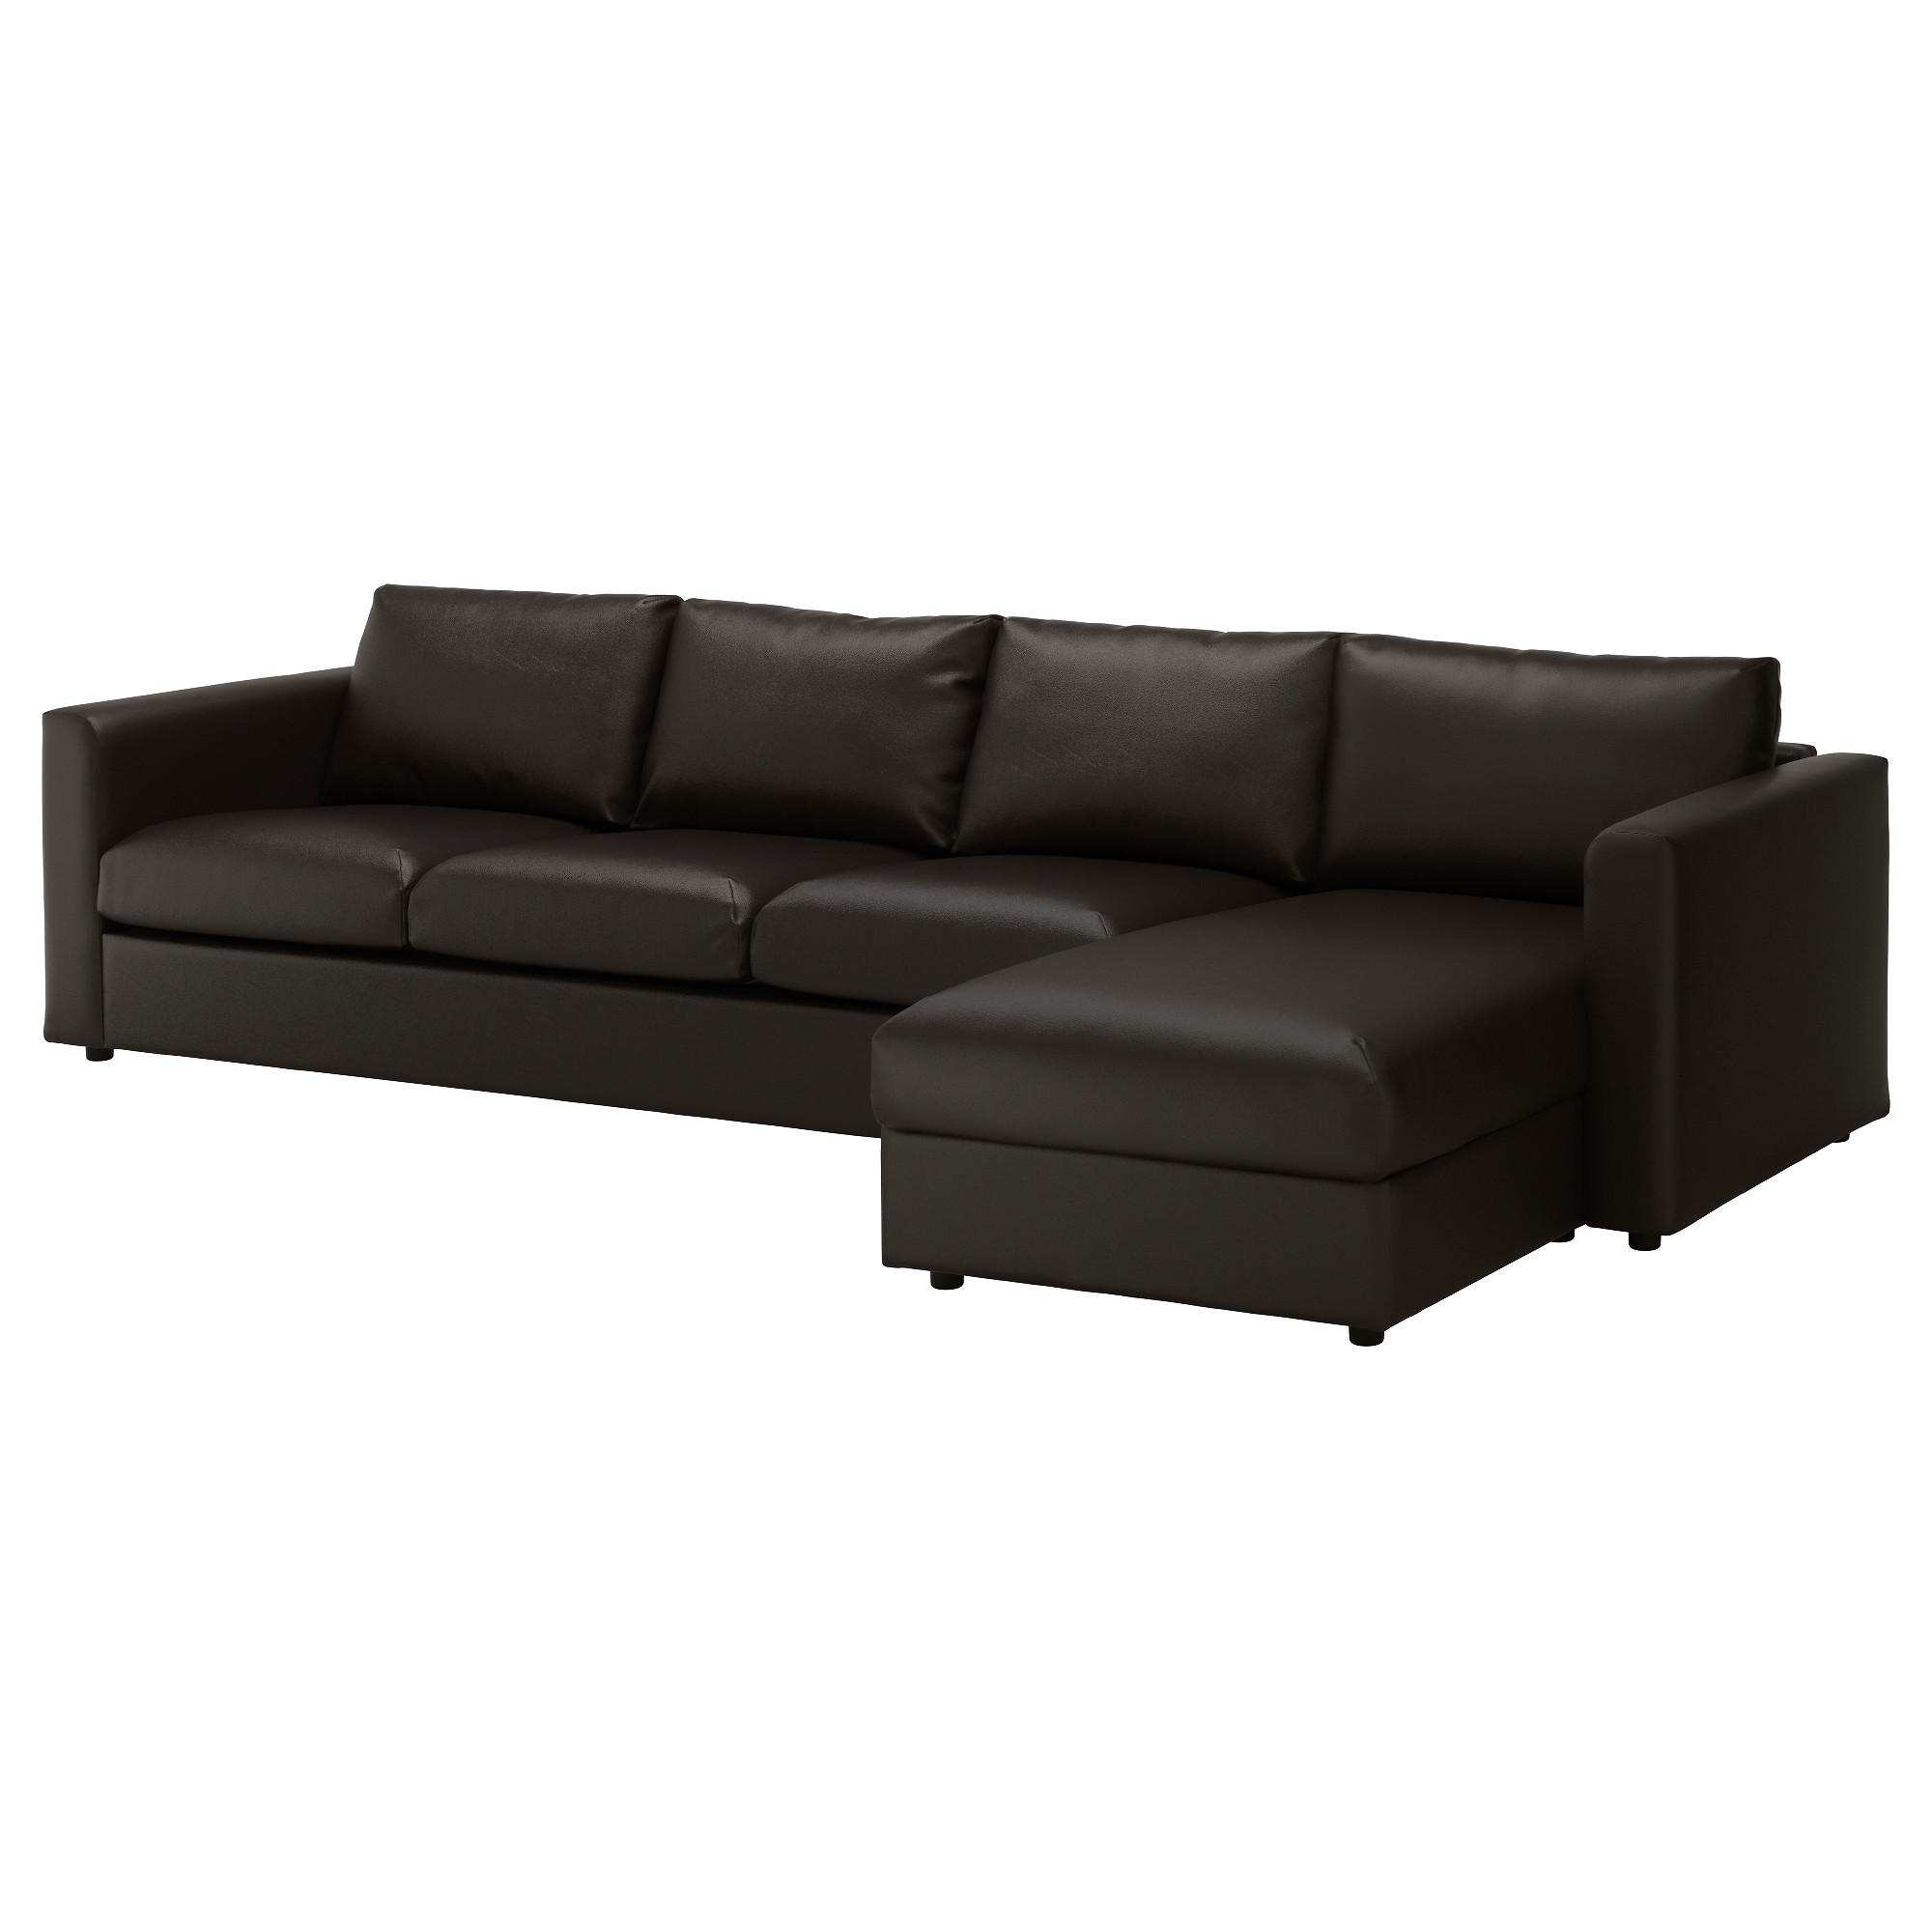 Vimle 4 Seat Sofa With Chaise Longue/farsta Black – Ikea Regarding 4 Seat Sofas (Image 20 of 20)